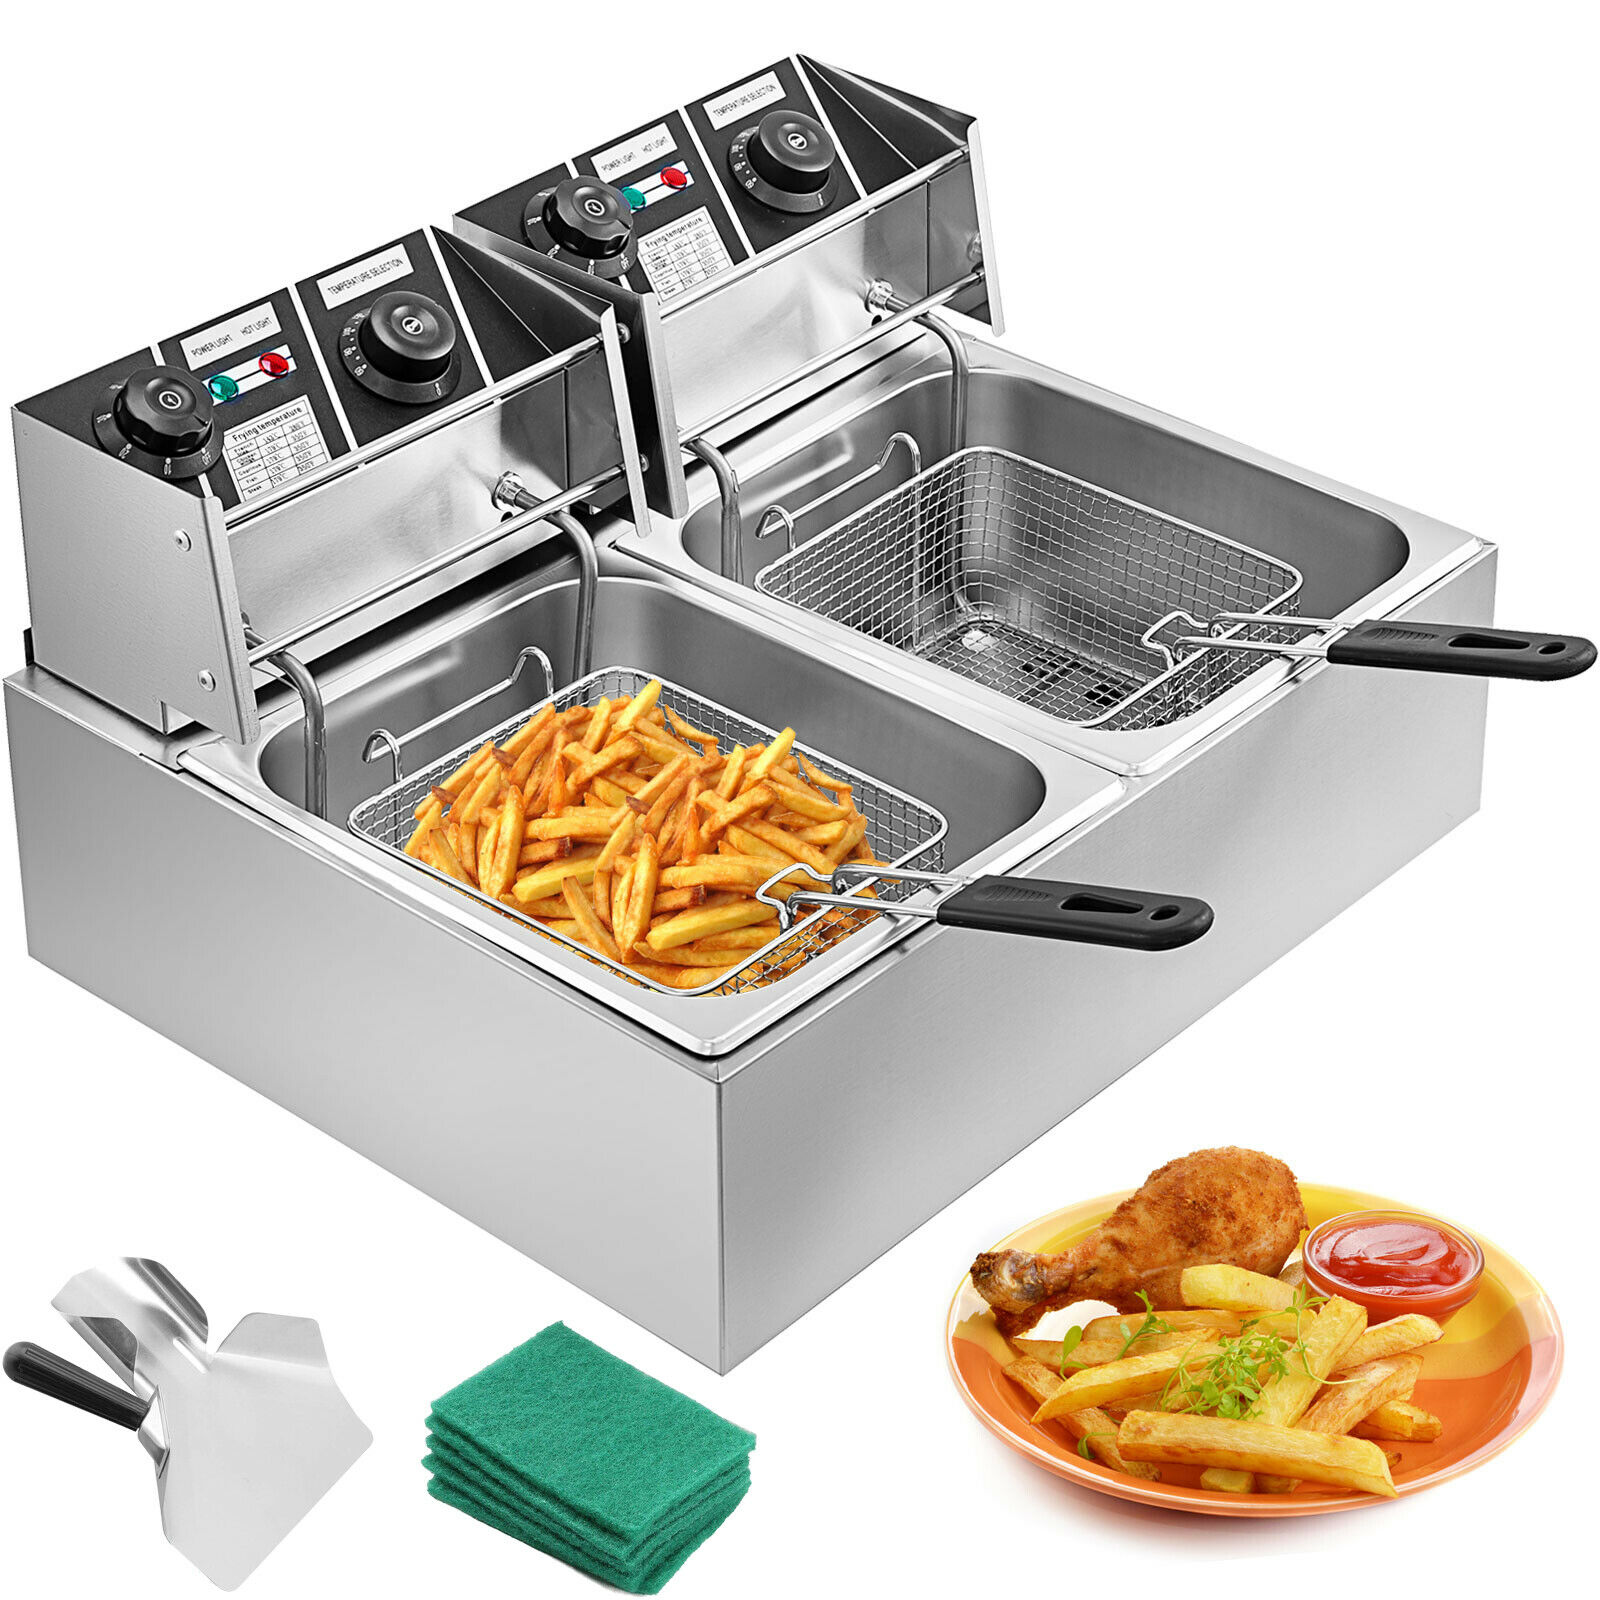 2 PCSDeep Fryer Deep Fryer Professional Stainless Steel Cold Zone Gastronomy 20L